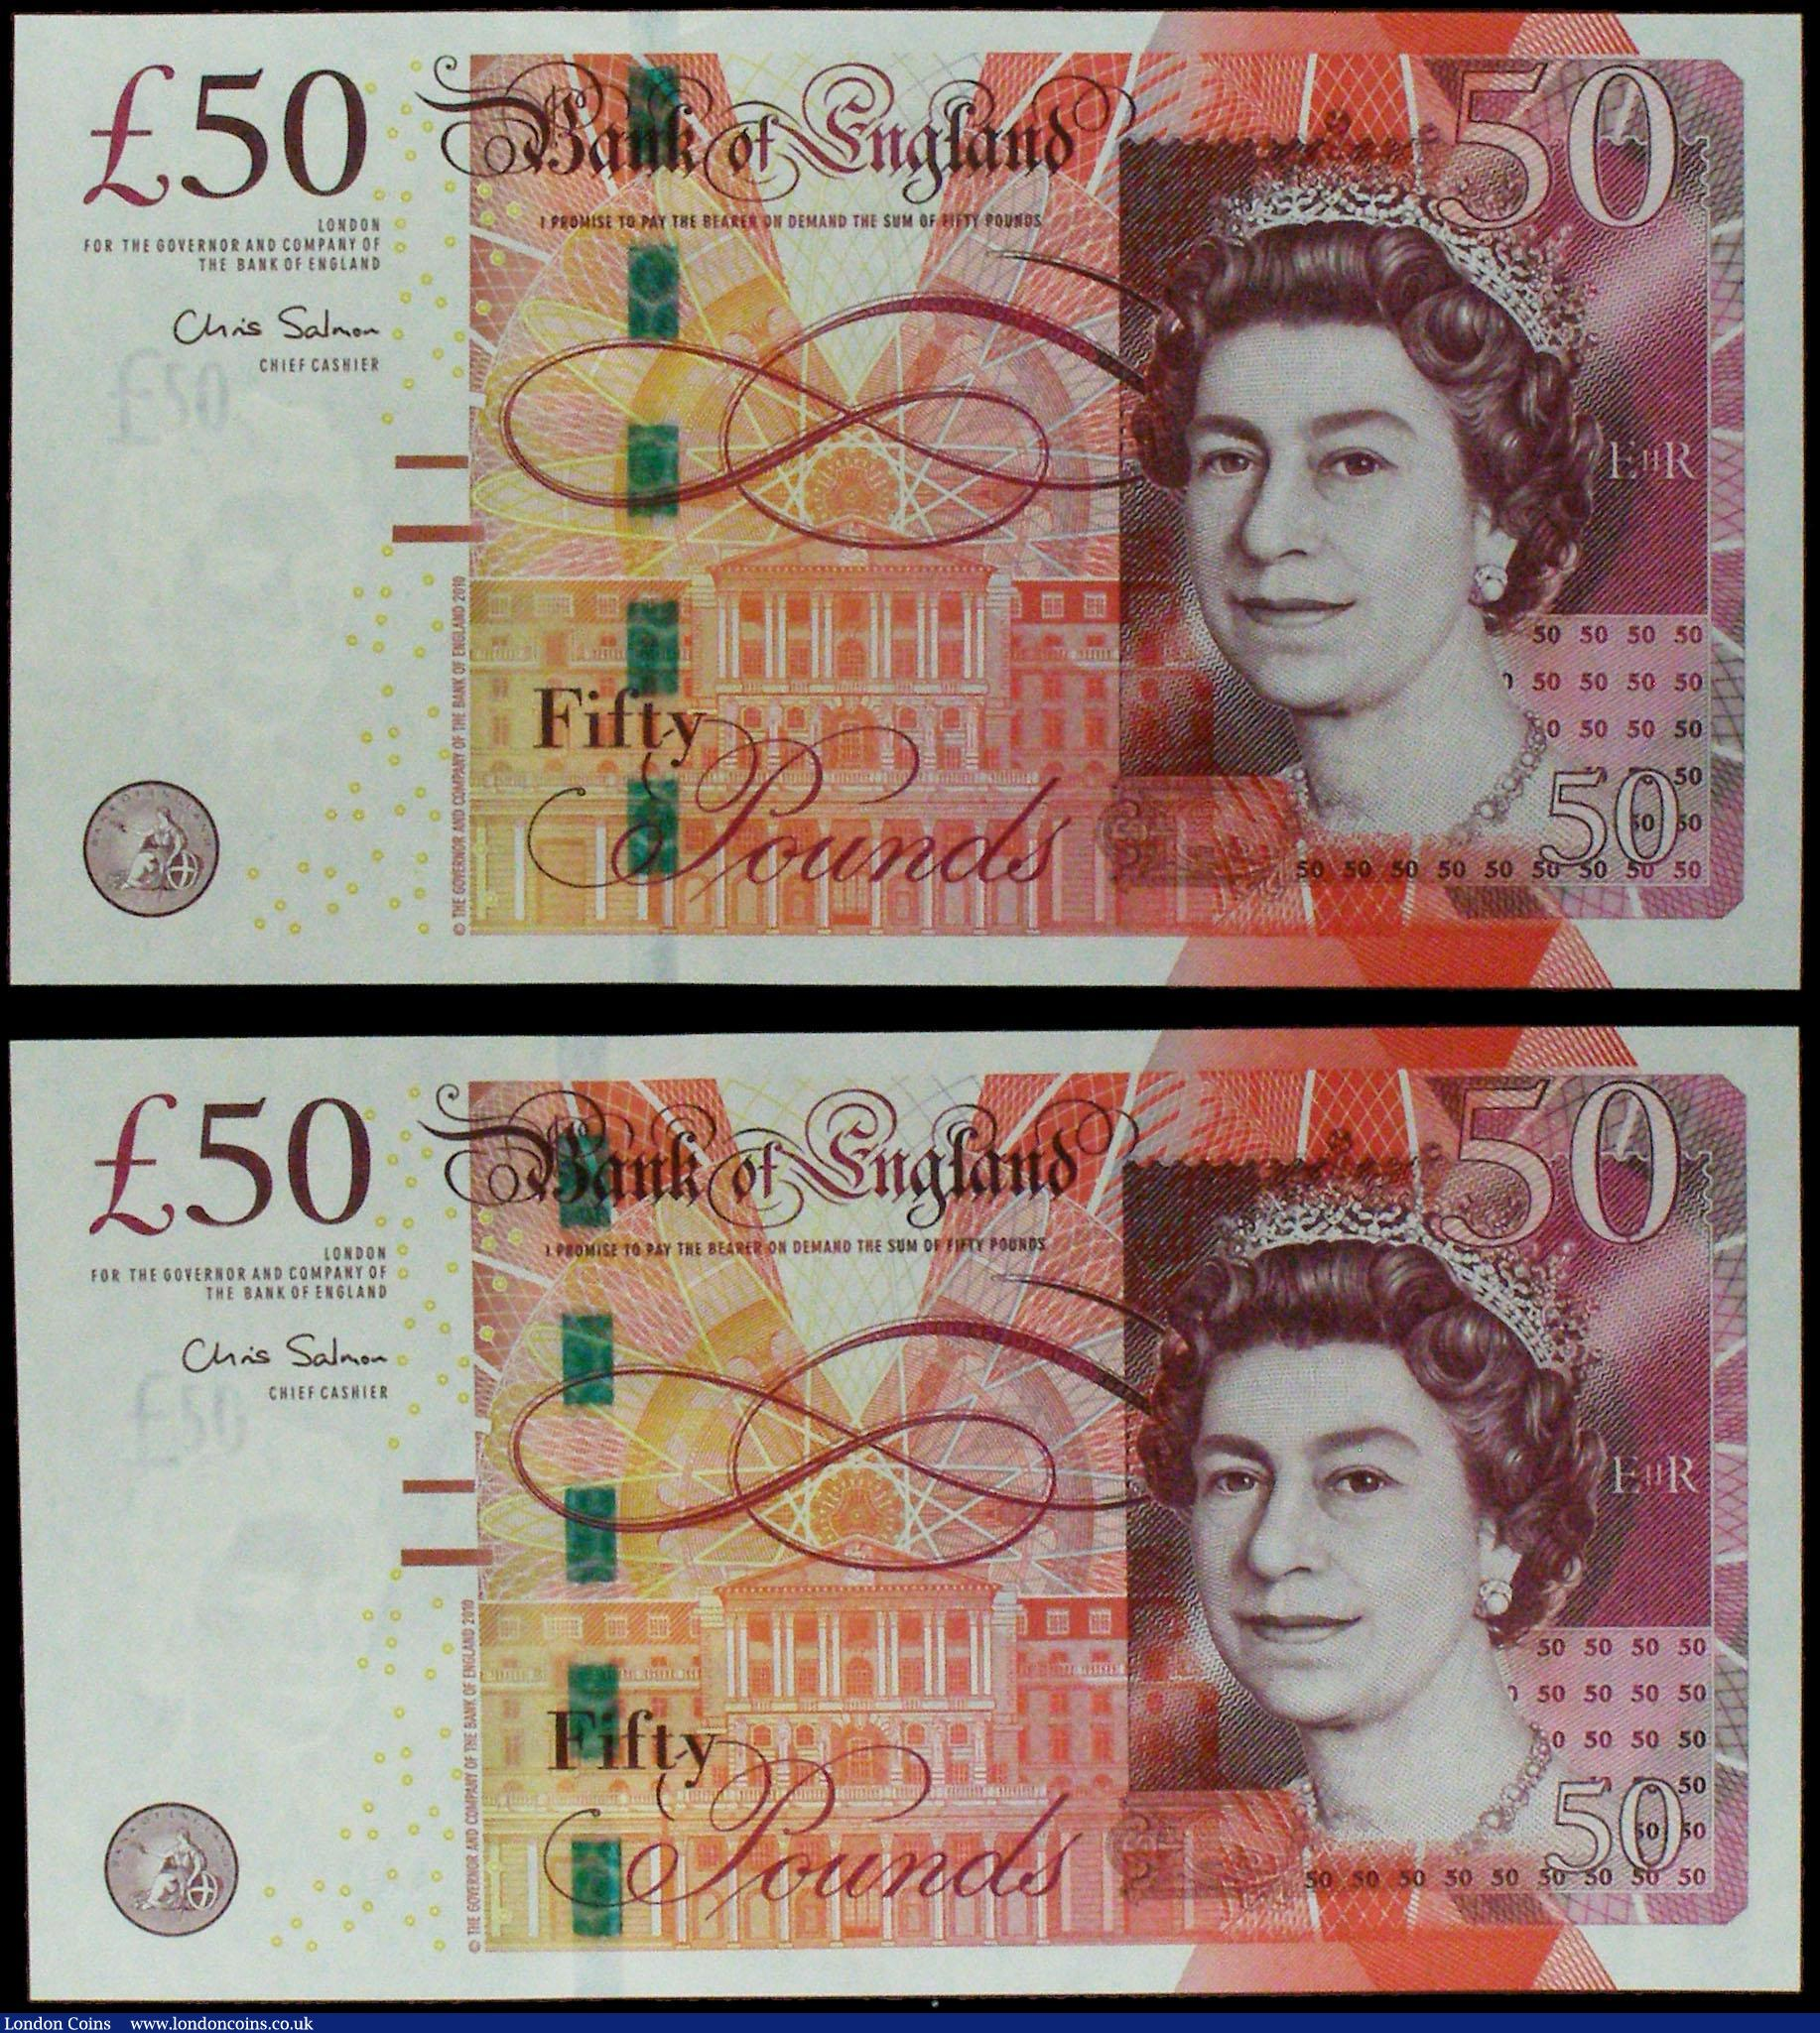 Fifty Pounds Salmon B410 (2) issued 2011, FIRST RUN notes with low